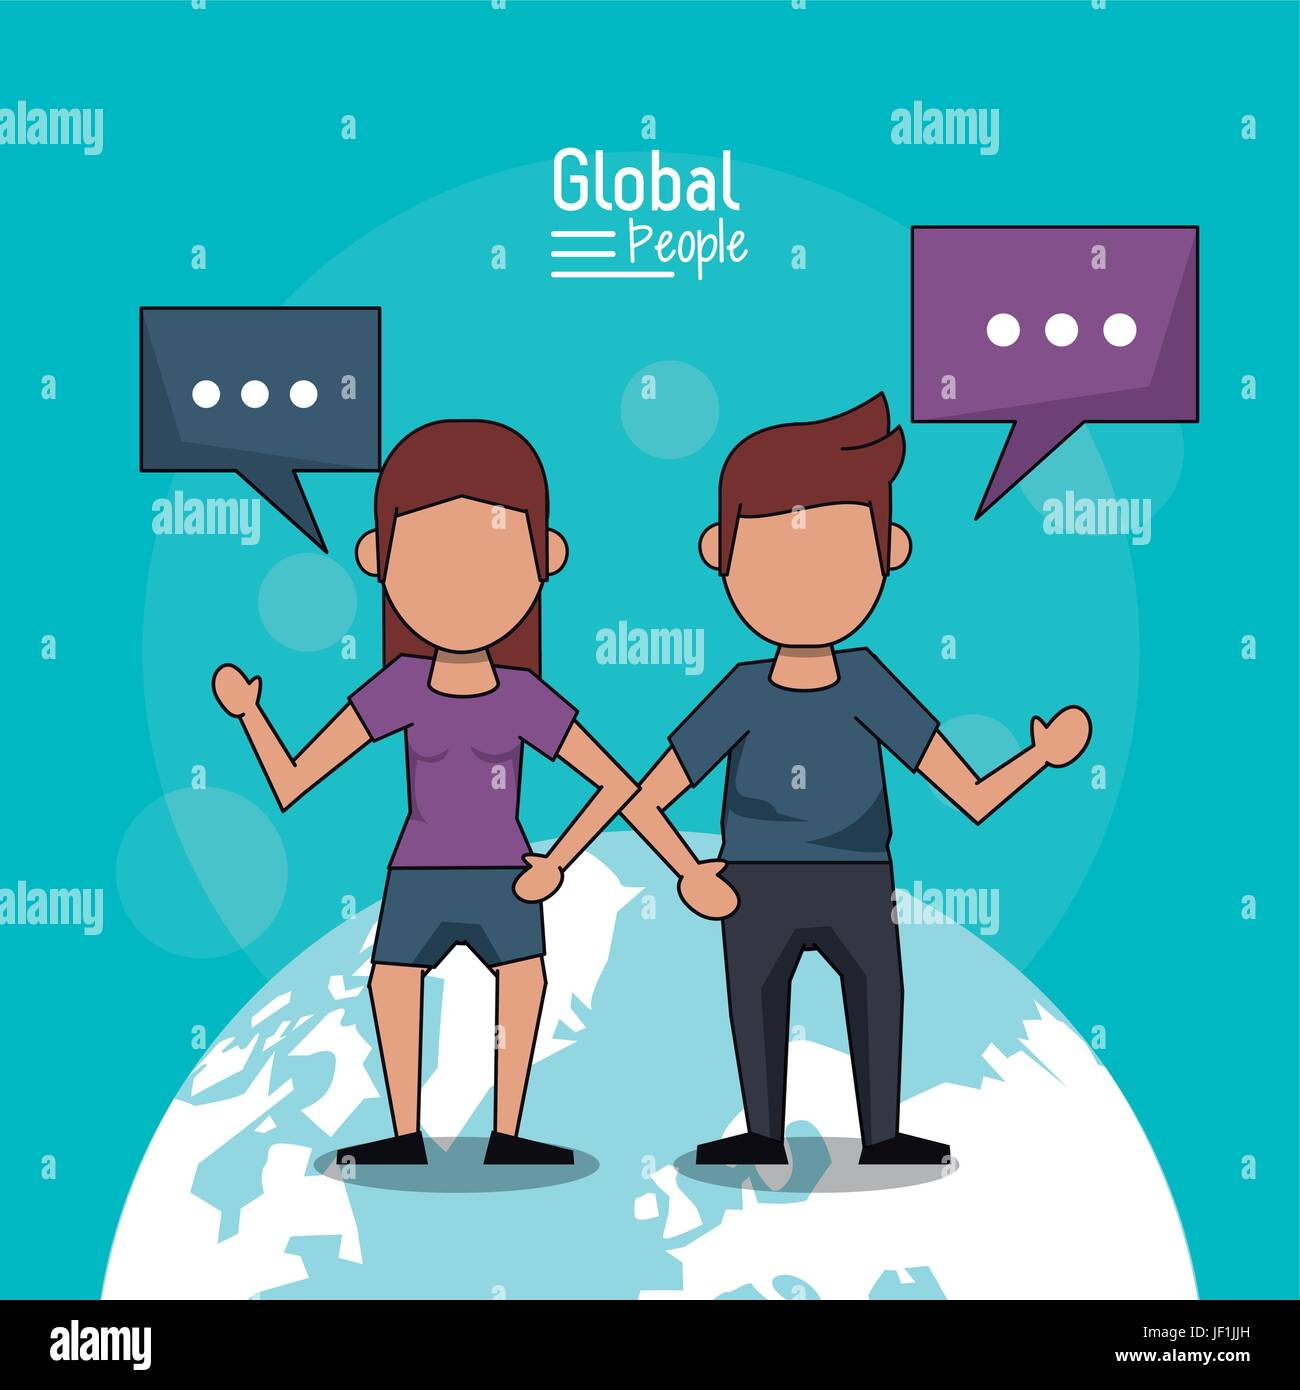 poster of global people with light blue background with faceless couple over planet earth and text dialogues - Stock Image